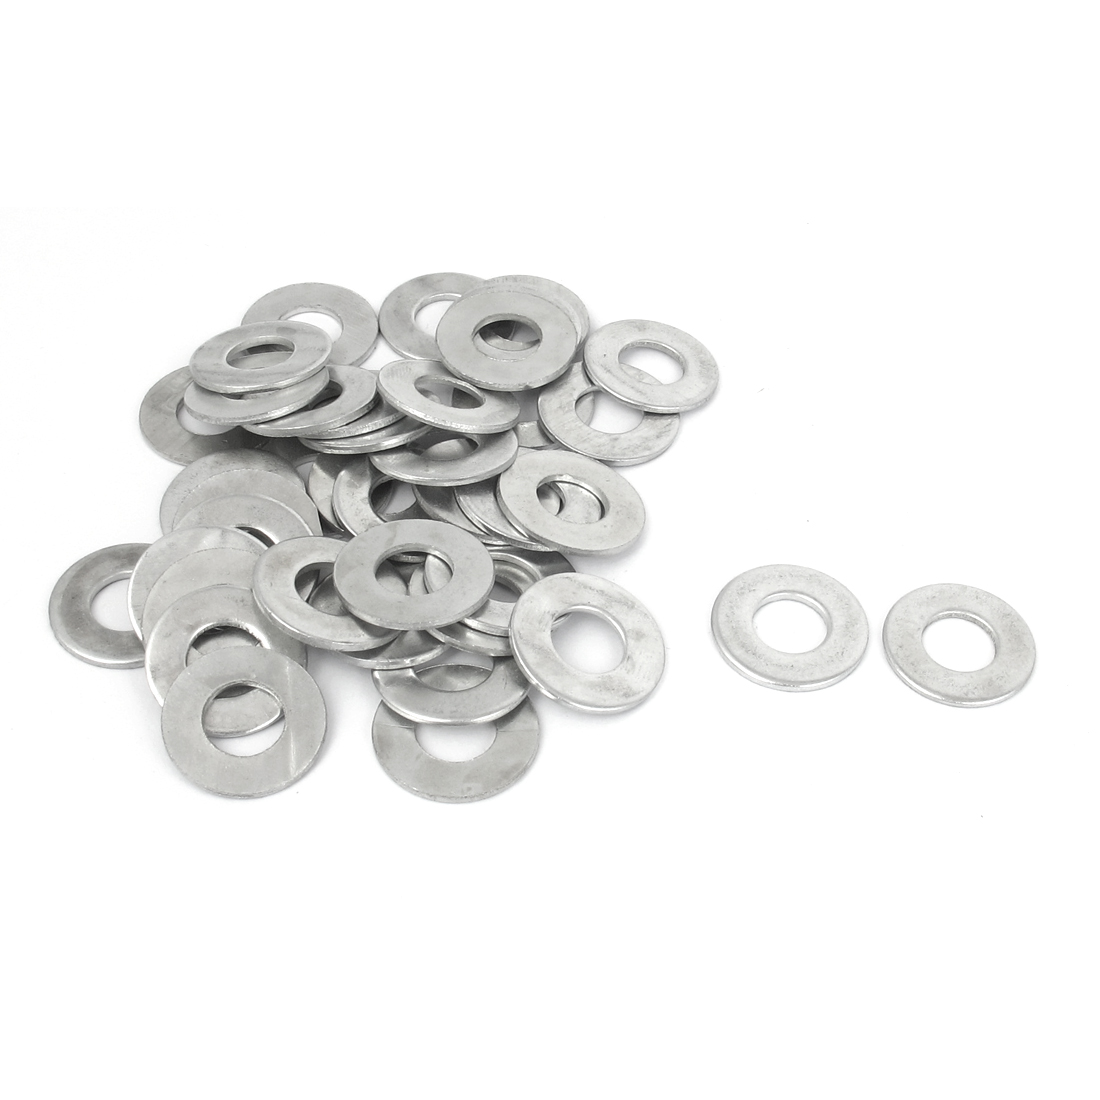 40Pcs M10x20mmx1.5mm Stainless Steel Metric Round Flat Washer for Bolt Screw